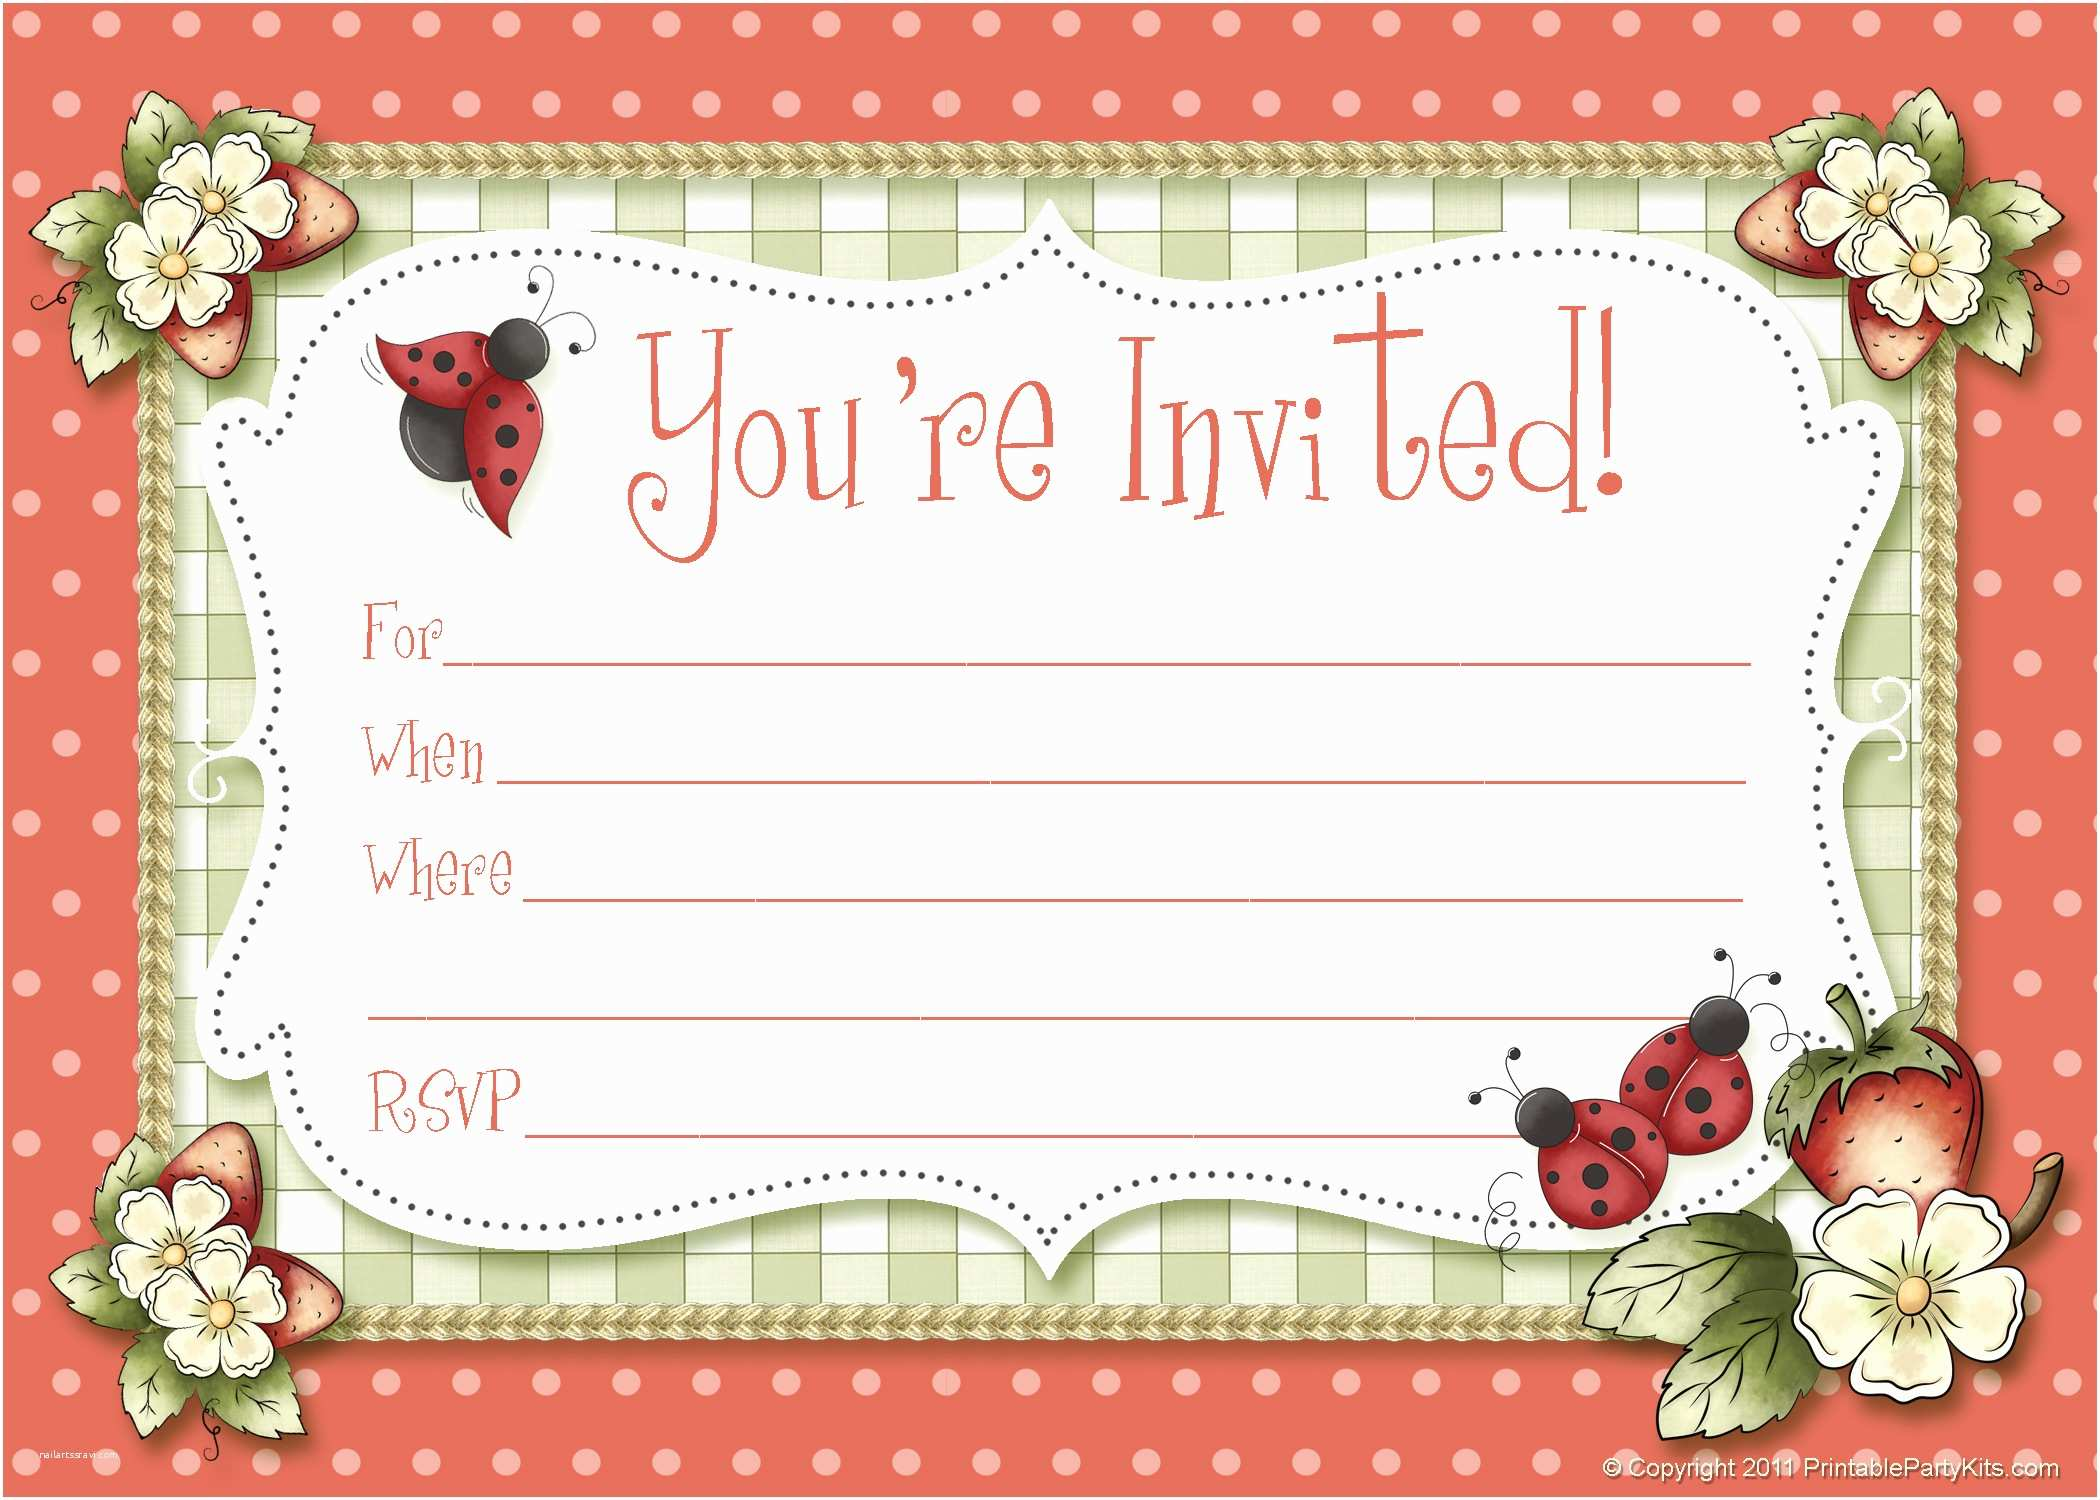 Design Your Own Party Invitations Line Party Invitations